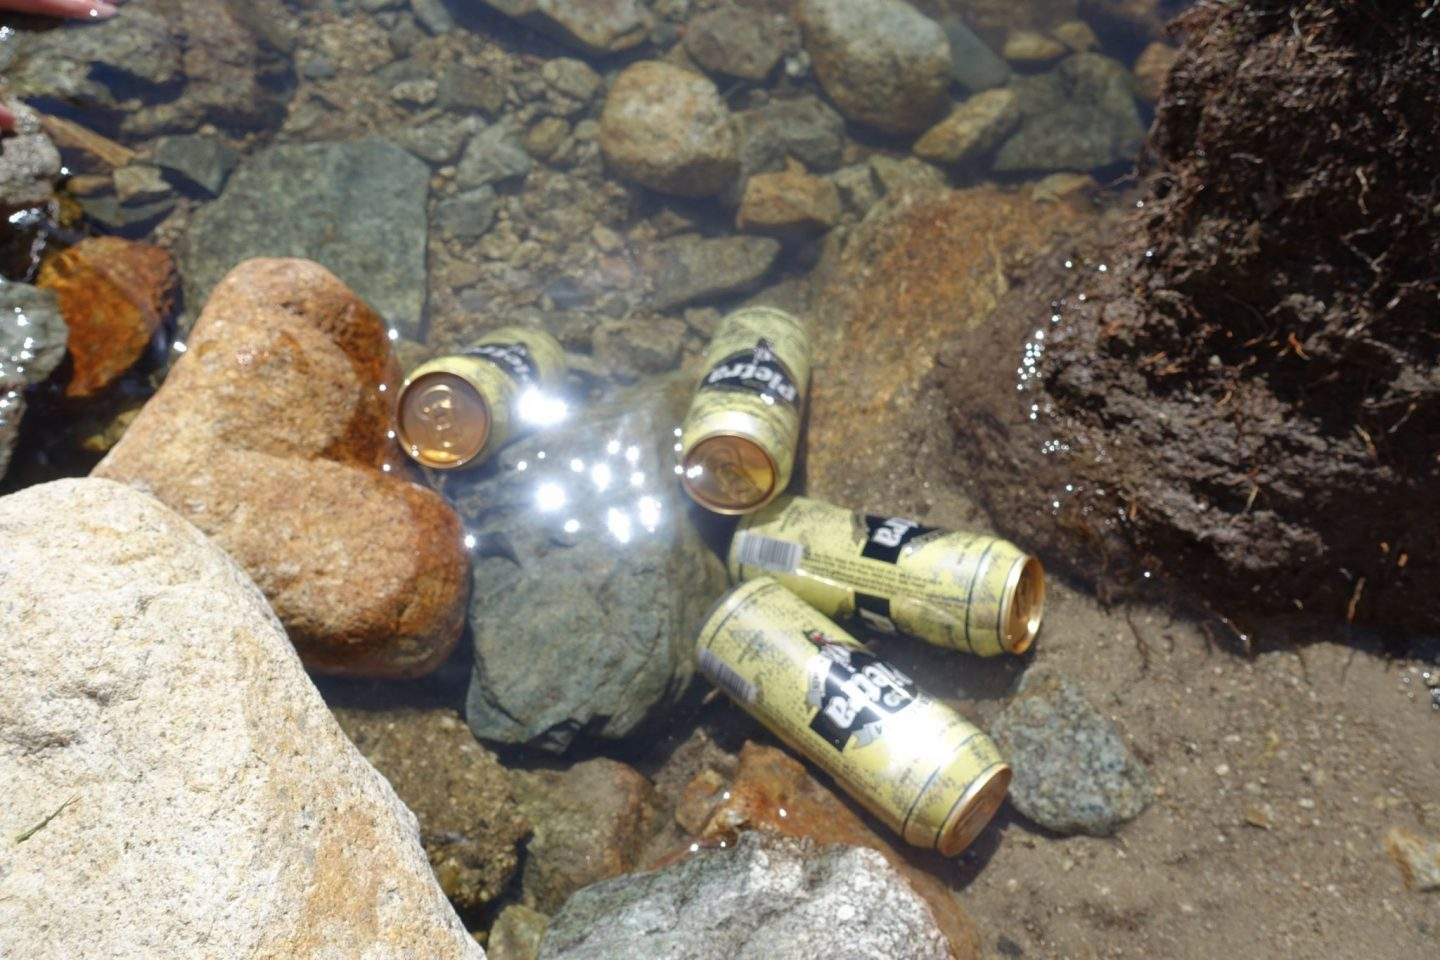 A shot of Corsian beers floating in a rock pool